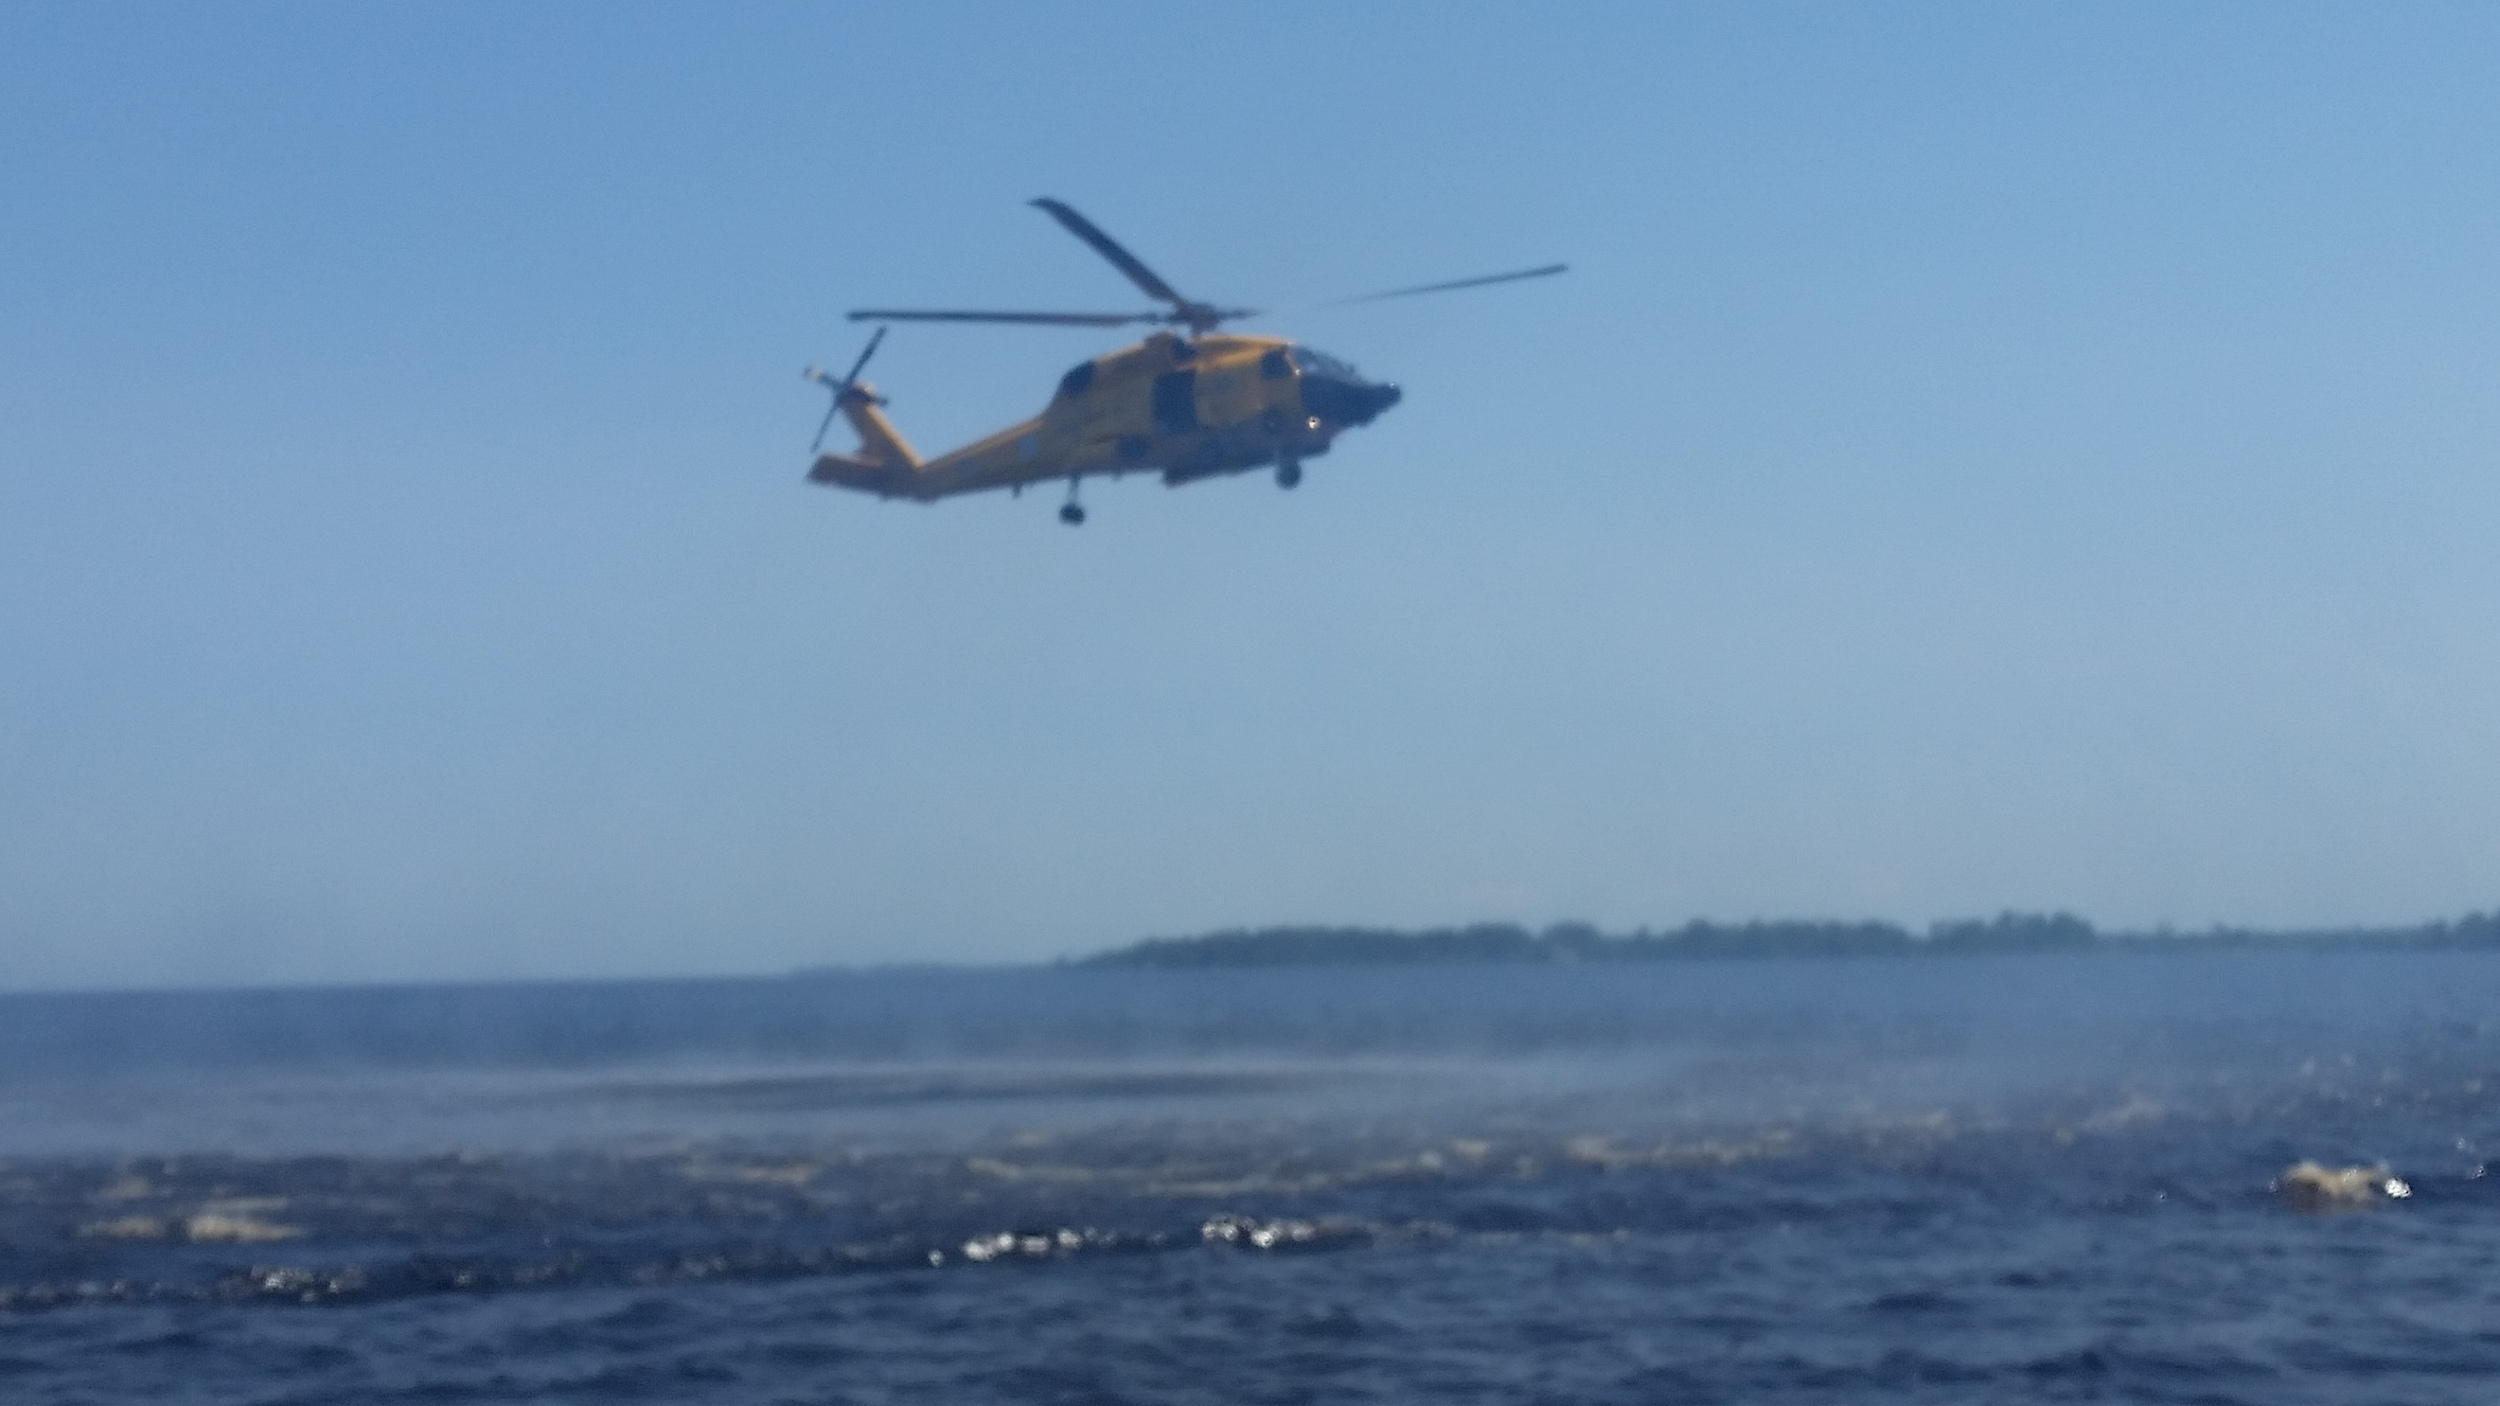 MH-60T practicing hoists